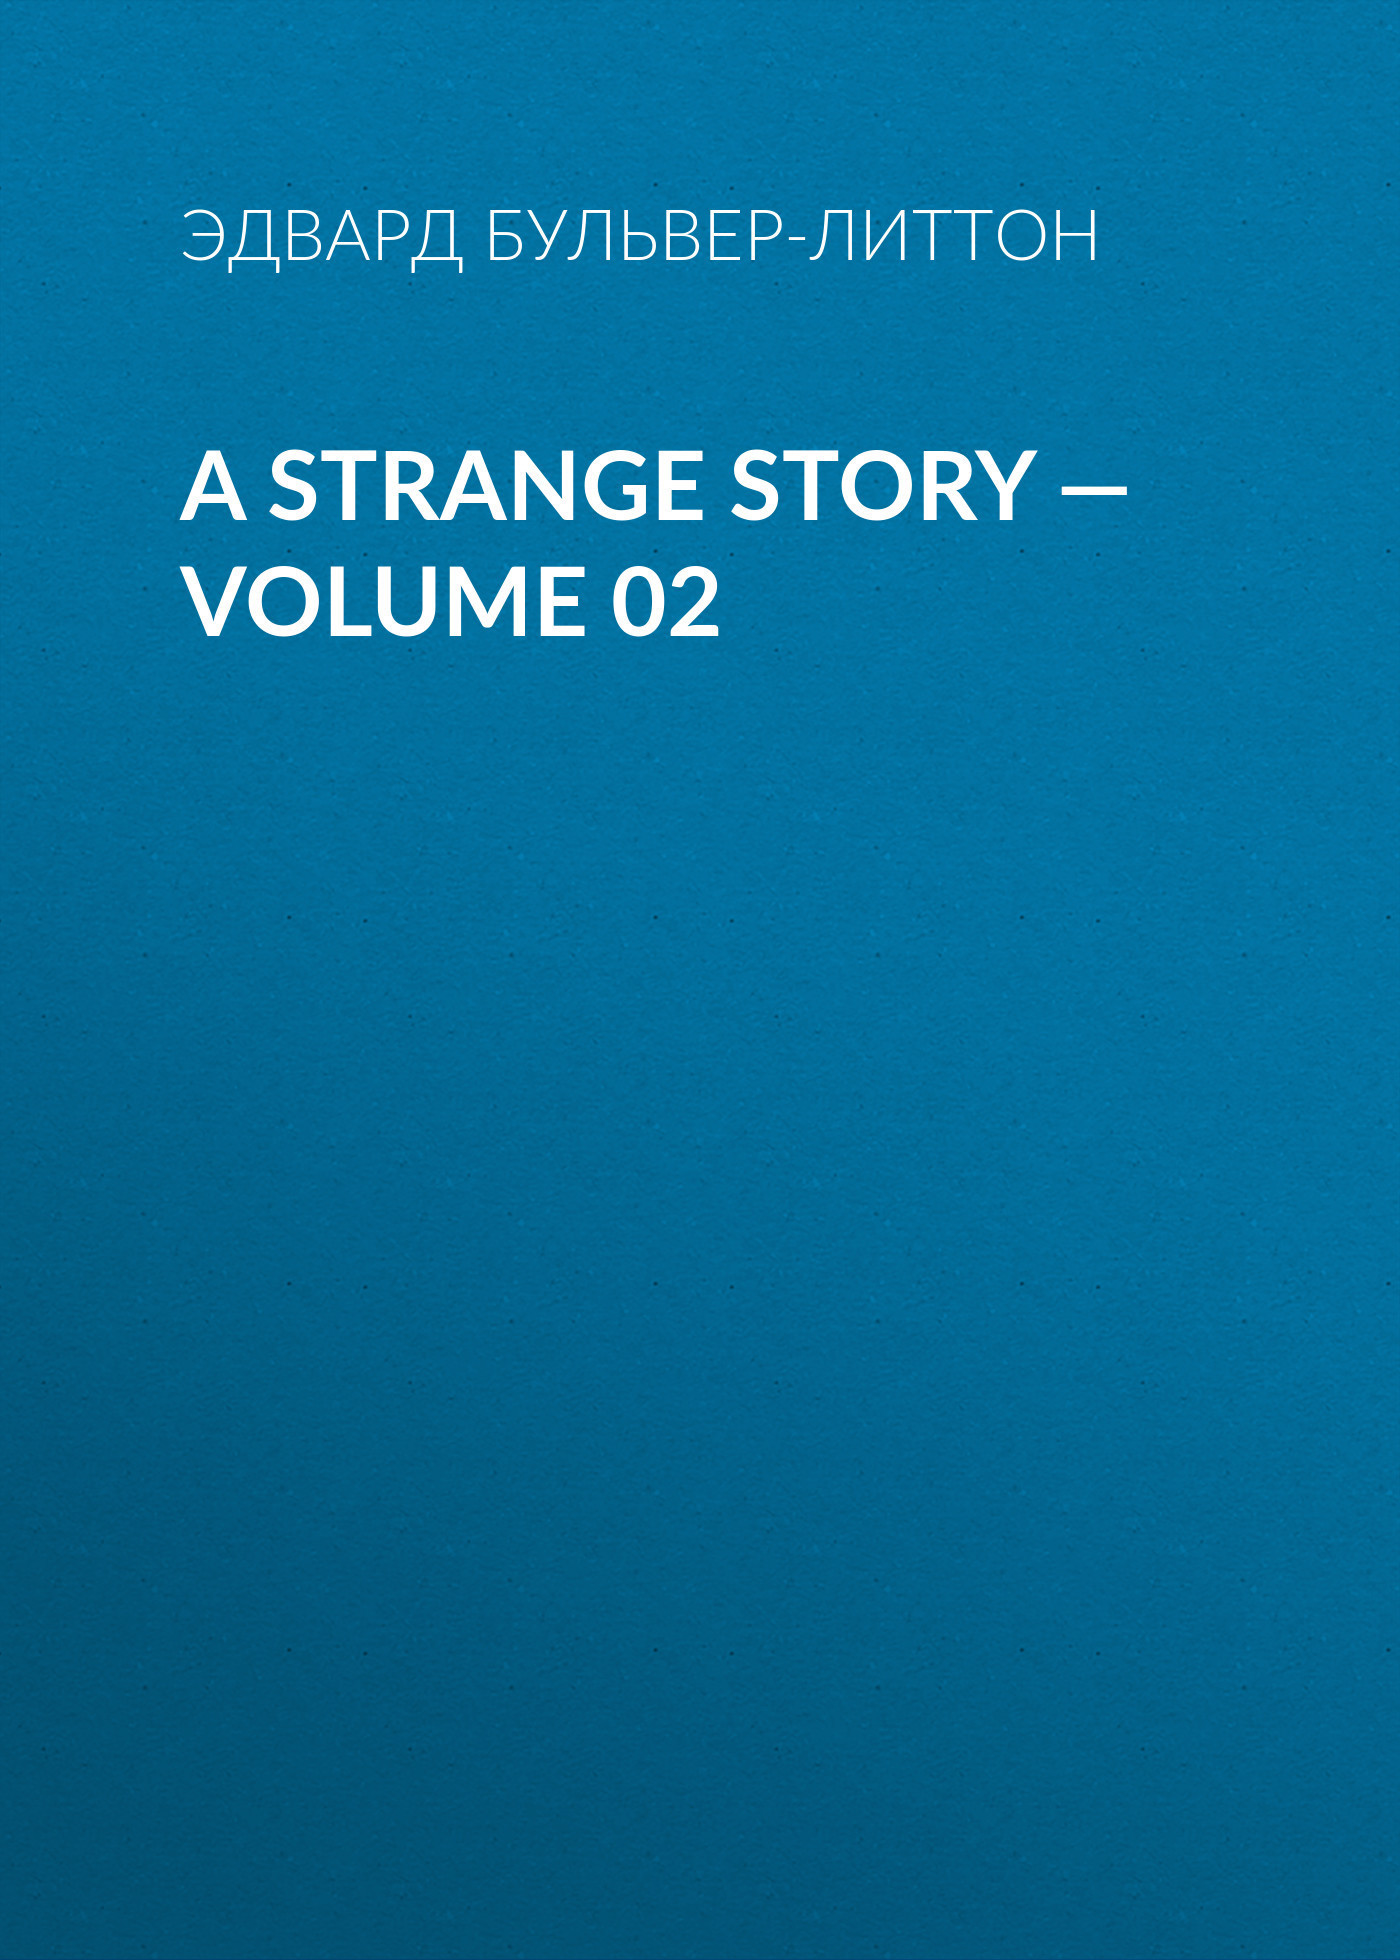 Эдвард Бульвер-Литтон A Strange Story — Volume 02 watson william davy trevethlan a cornish story volume 3